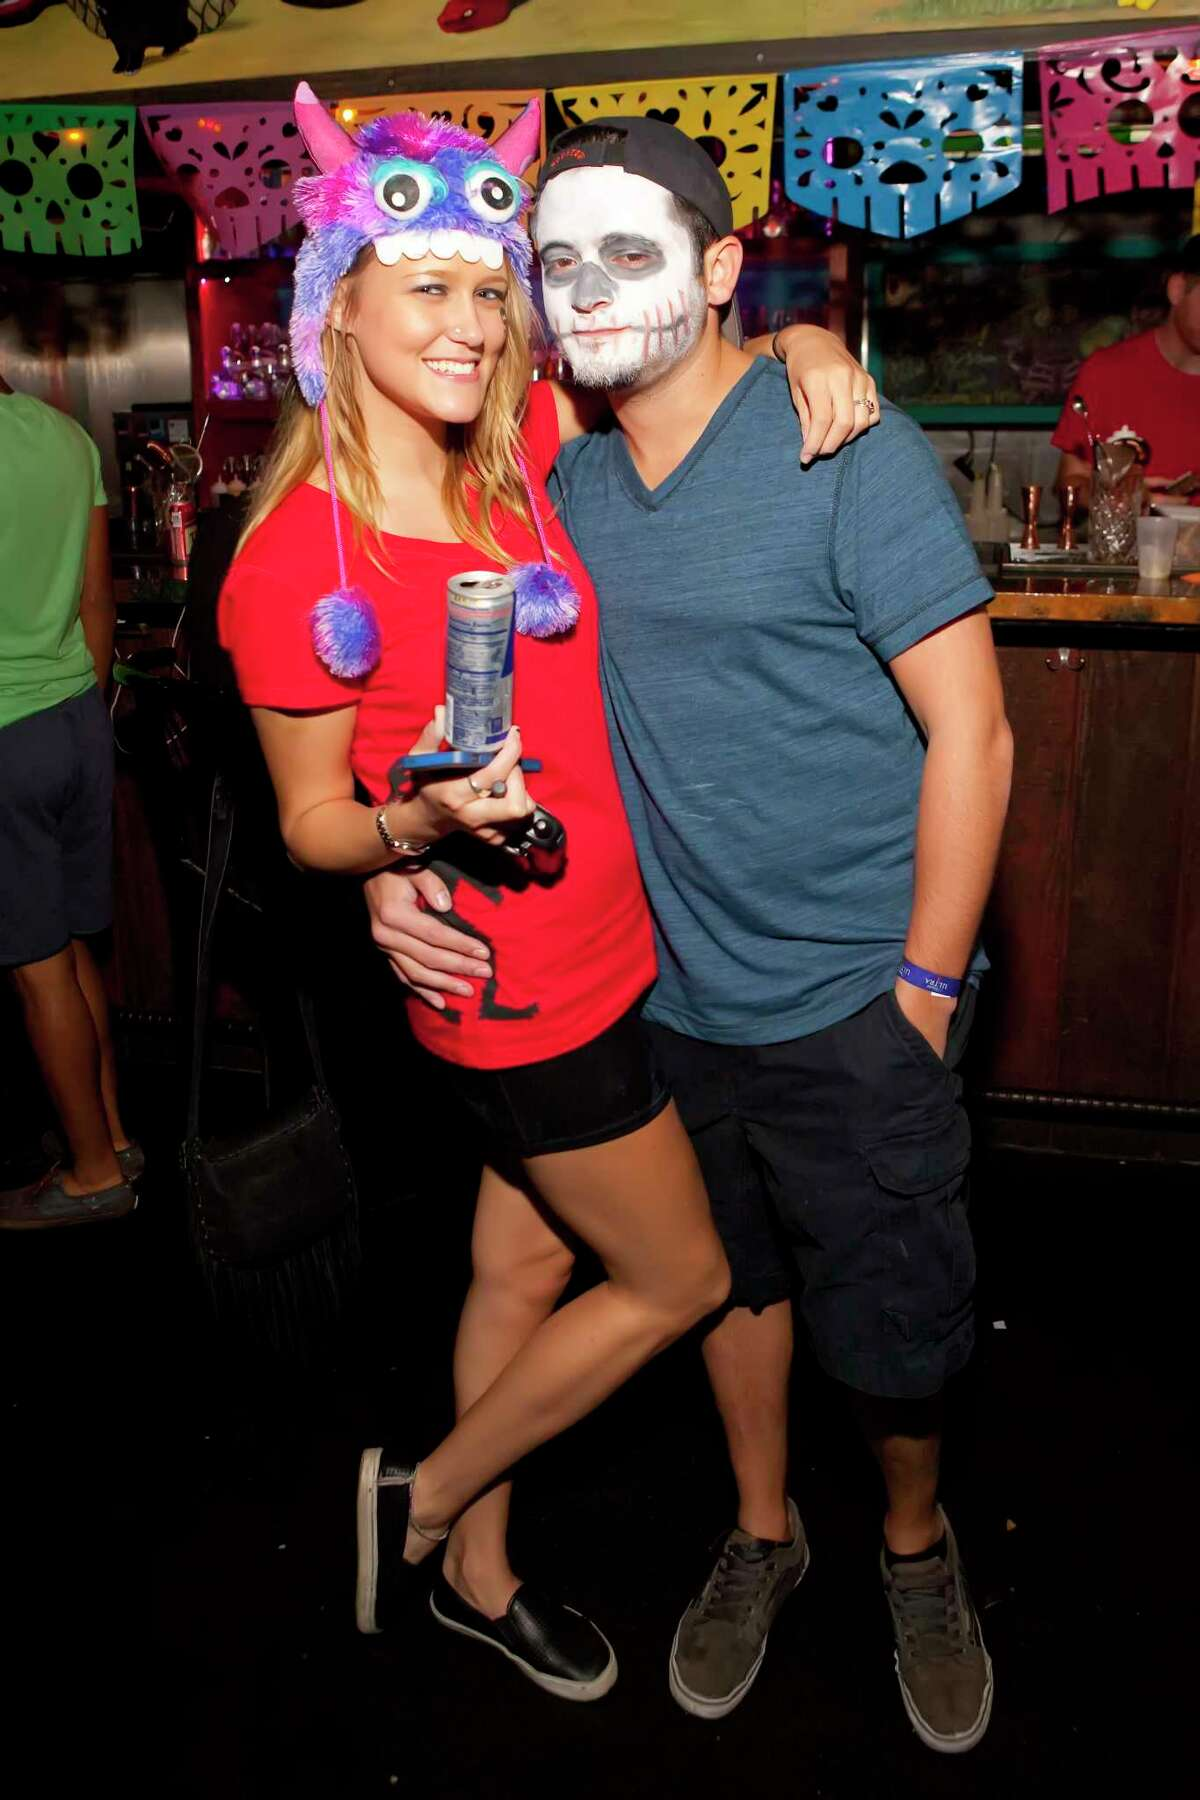 El Big Bad in downtown Houston will celebrate Halloween and Dia de los Muertos in a series of parties from Oct. 30 to Nov. 4. Shown: Scenes from past holiday parties at El Big Bad.